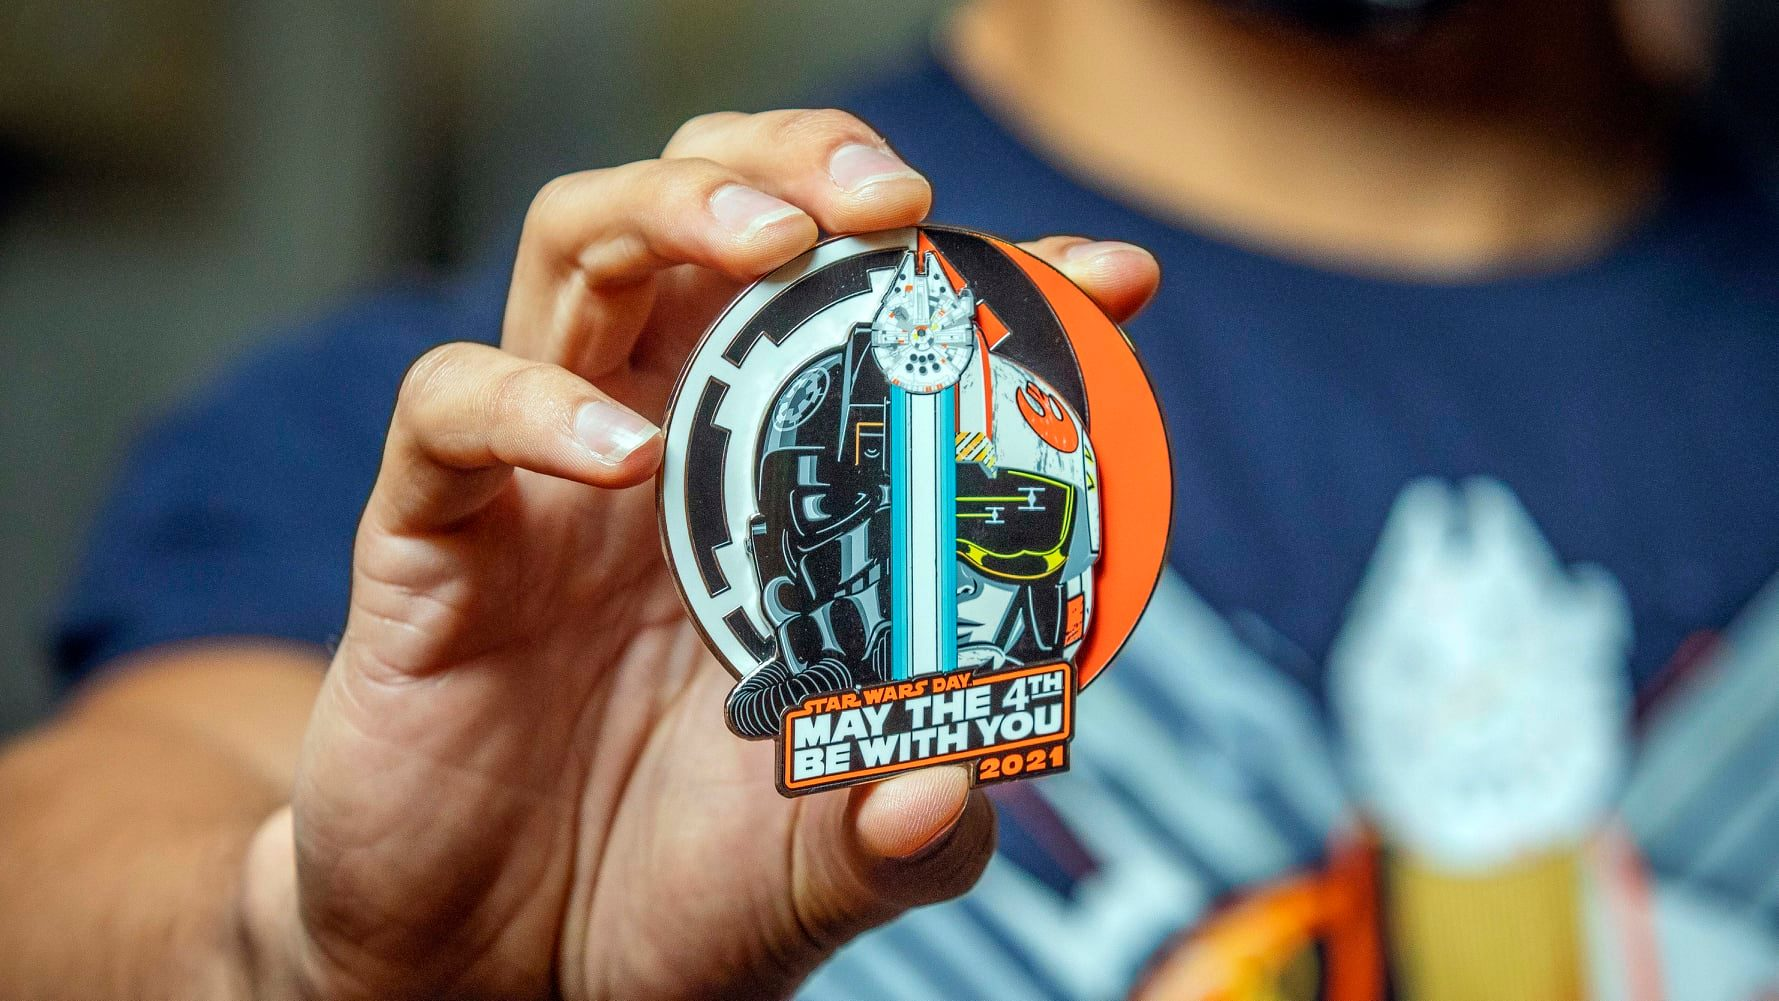 Don't miss the Star Wars May the 4th Merchandise at the Disney Parks 2